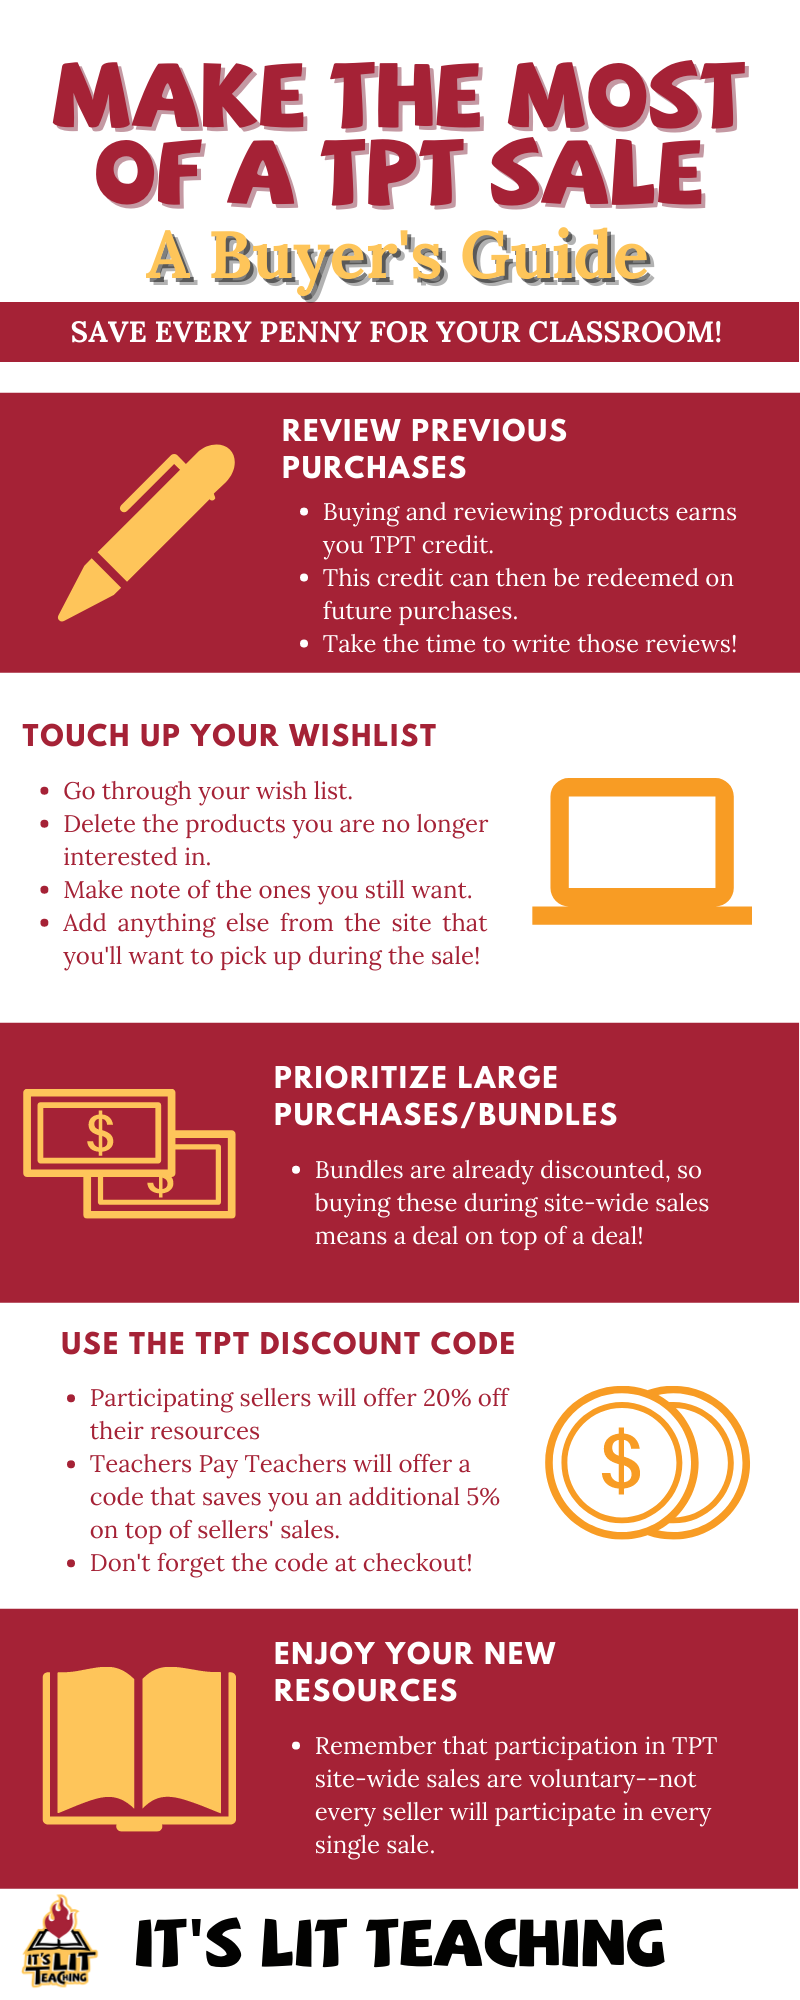 Make the Most of a TPT Sale Infographic